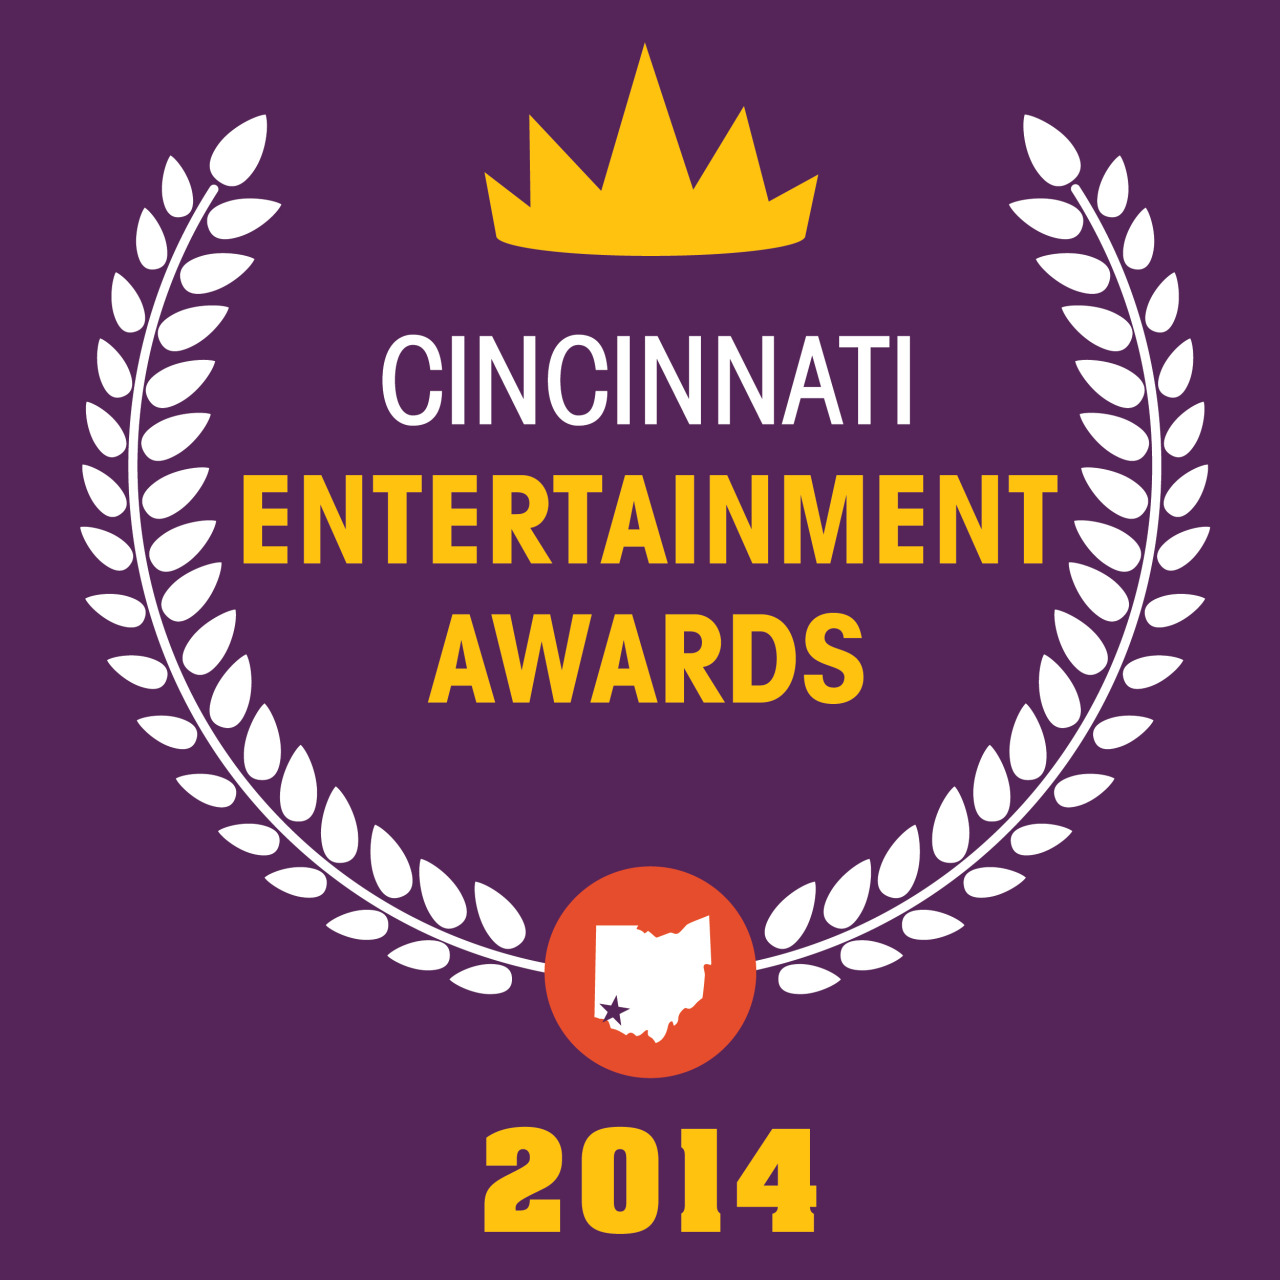 Very honored to be nominated by Cincinnati CityBeat for a Cincinnati Entertainment Award this year in the 'Rock' Category! We love our city, its music scene, our fans/friends/family, & the good folks at City Beat. Voting starts TODAY at Noon EST. We'd be humbled & appreciative if you cast a vote for us here: http://citybeat-survey.wehaaserver.com/survey-8-2014_cincinnati_entertainment_awards.html